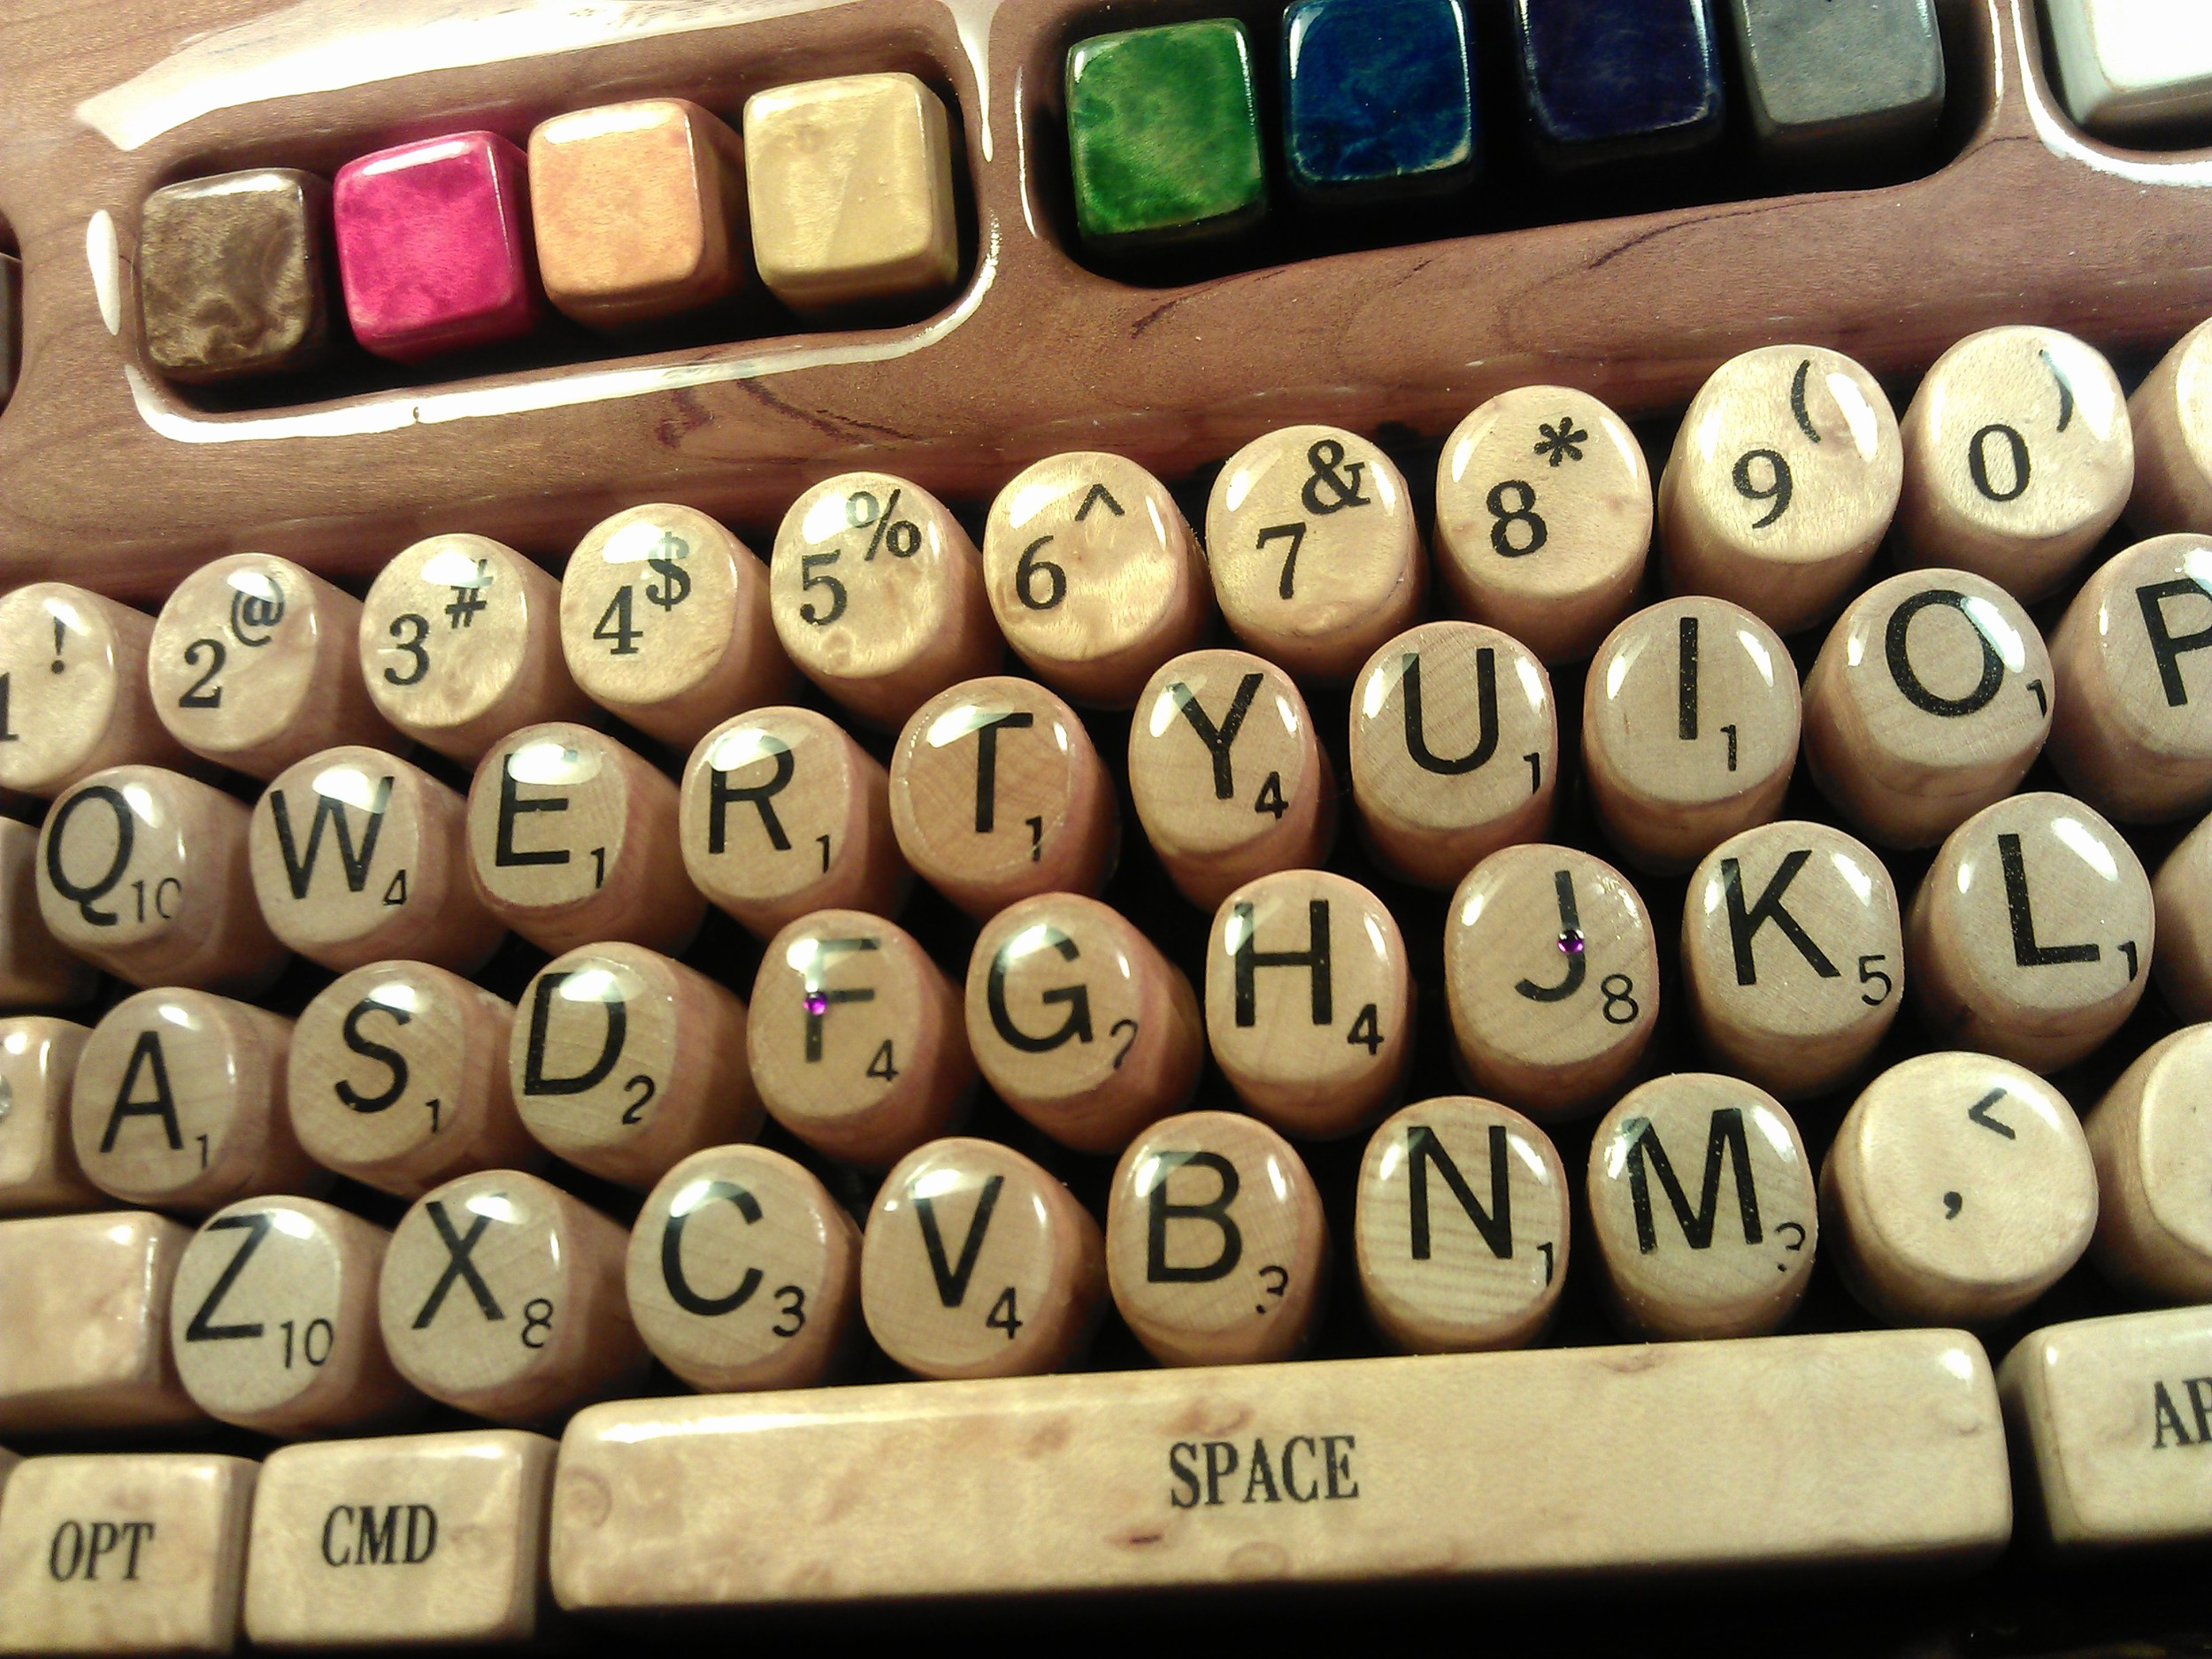 Professor Potter's Scrabble Key Board| Courtesy of Professor Steven Potter, PhD